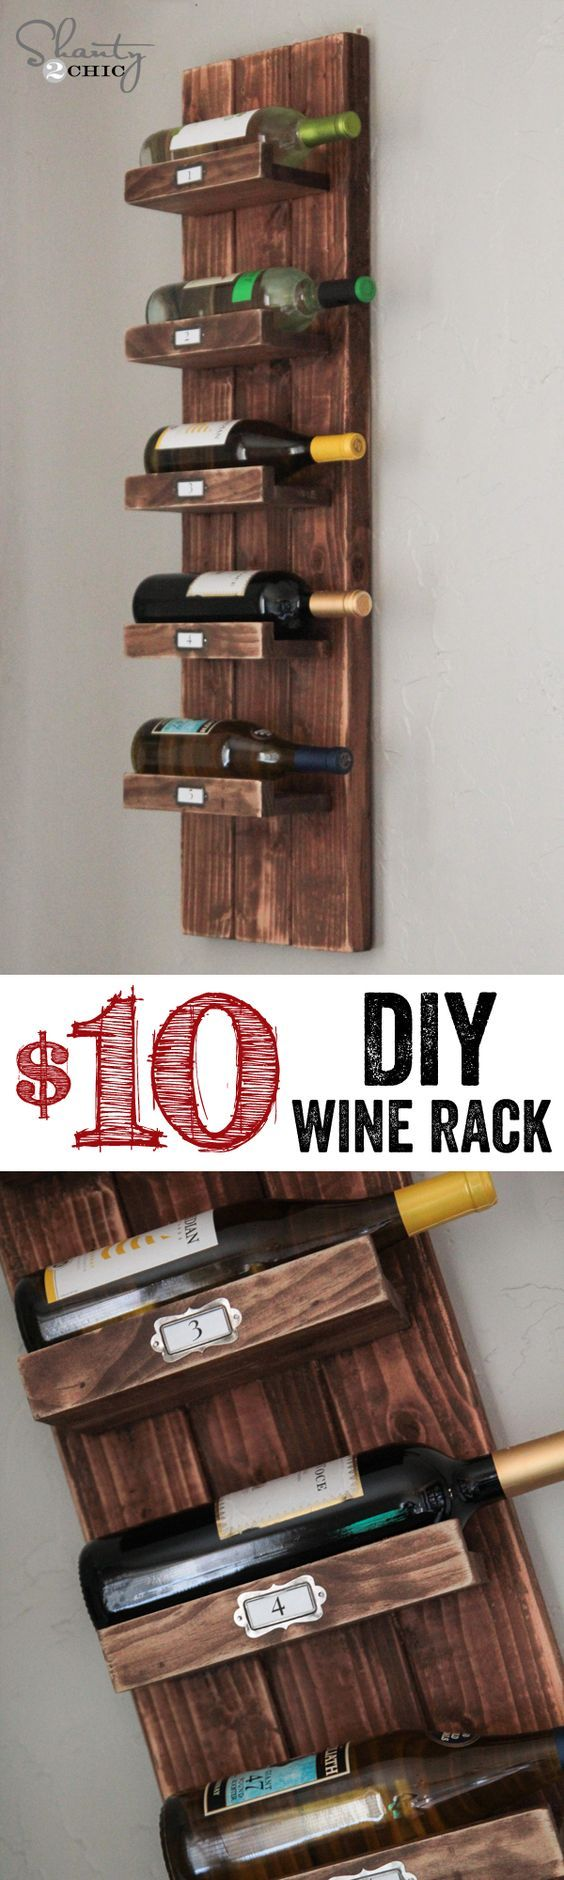 1000 ideas about diy wine racks on pinterest wine racks pallet wine and pallet wine racks. Black Bedroom Furniture Sets. Home Design Ideas